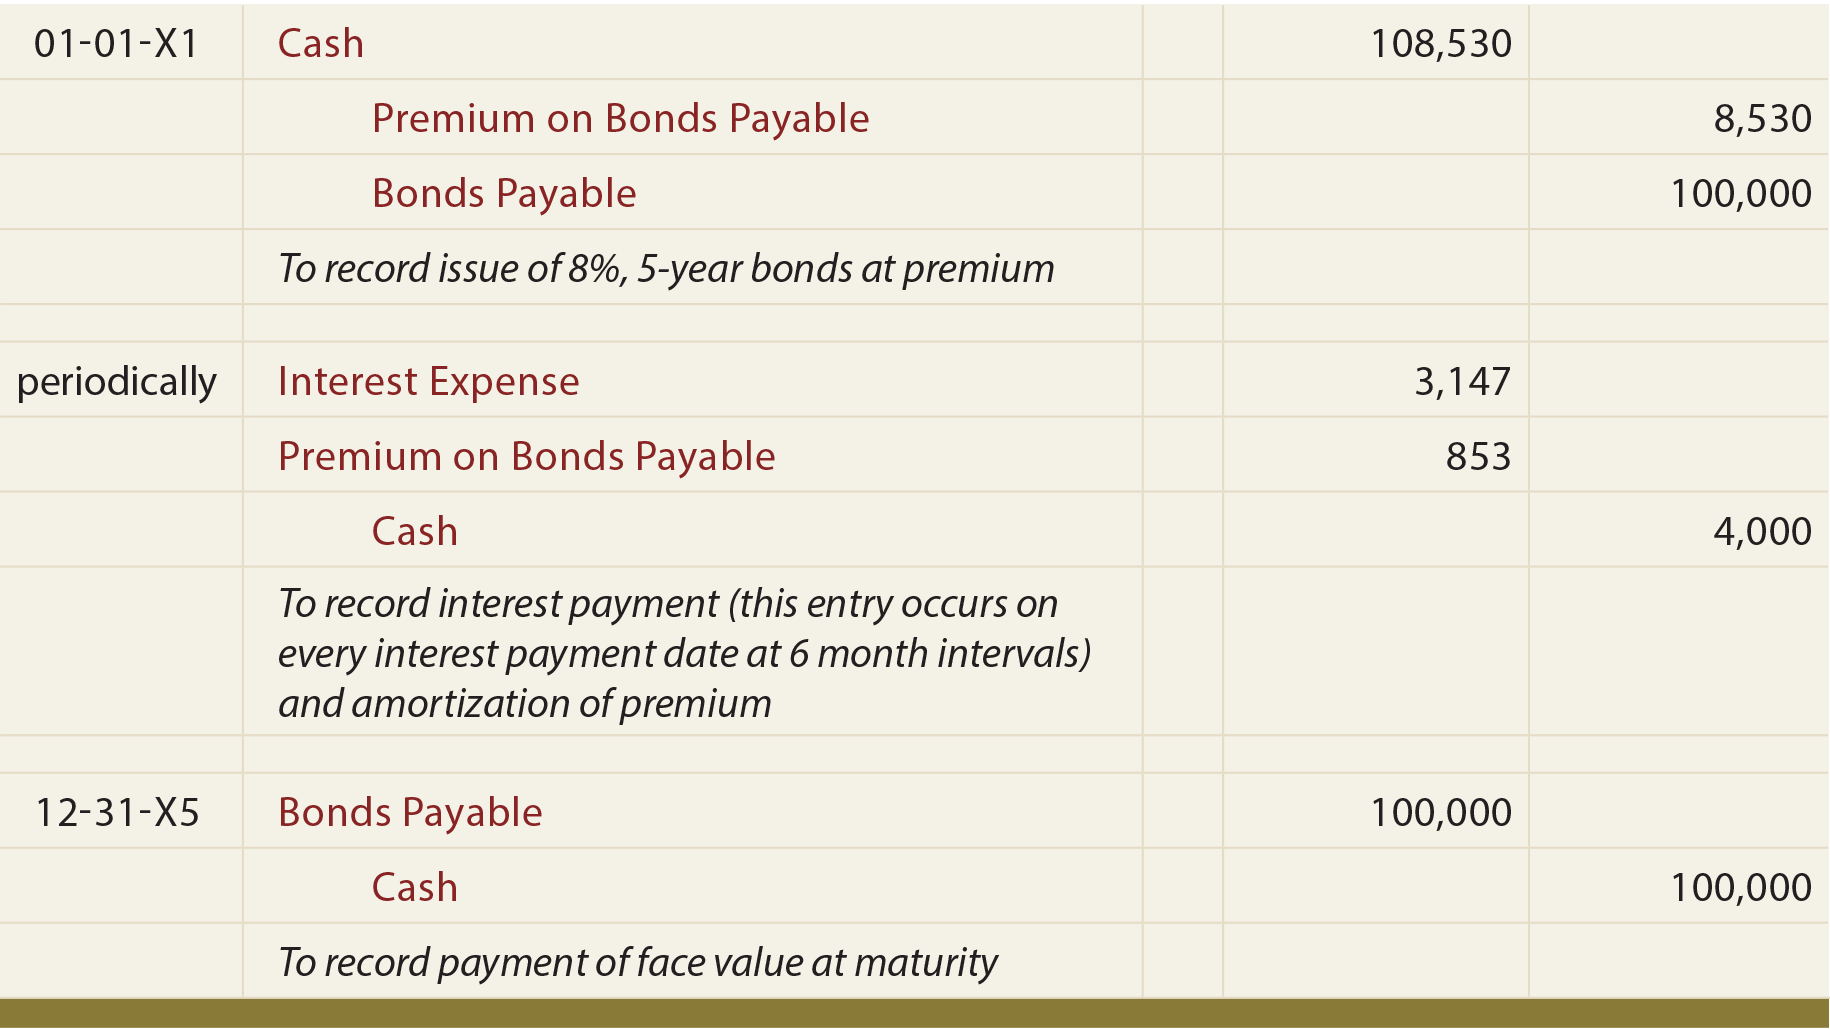 Accounting for Bonds Payable - Bond Issued at Premium Journal Entry